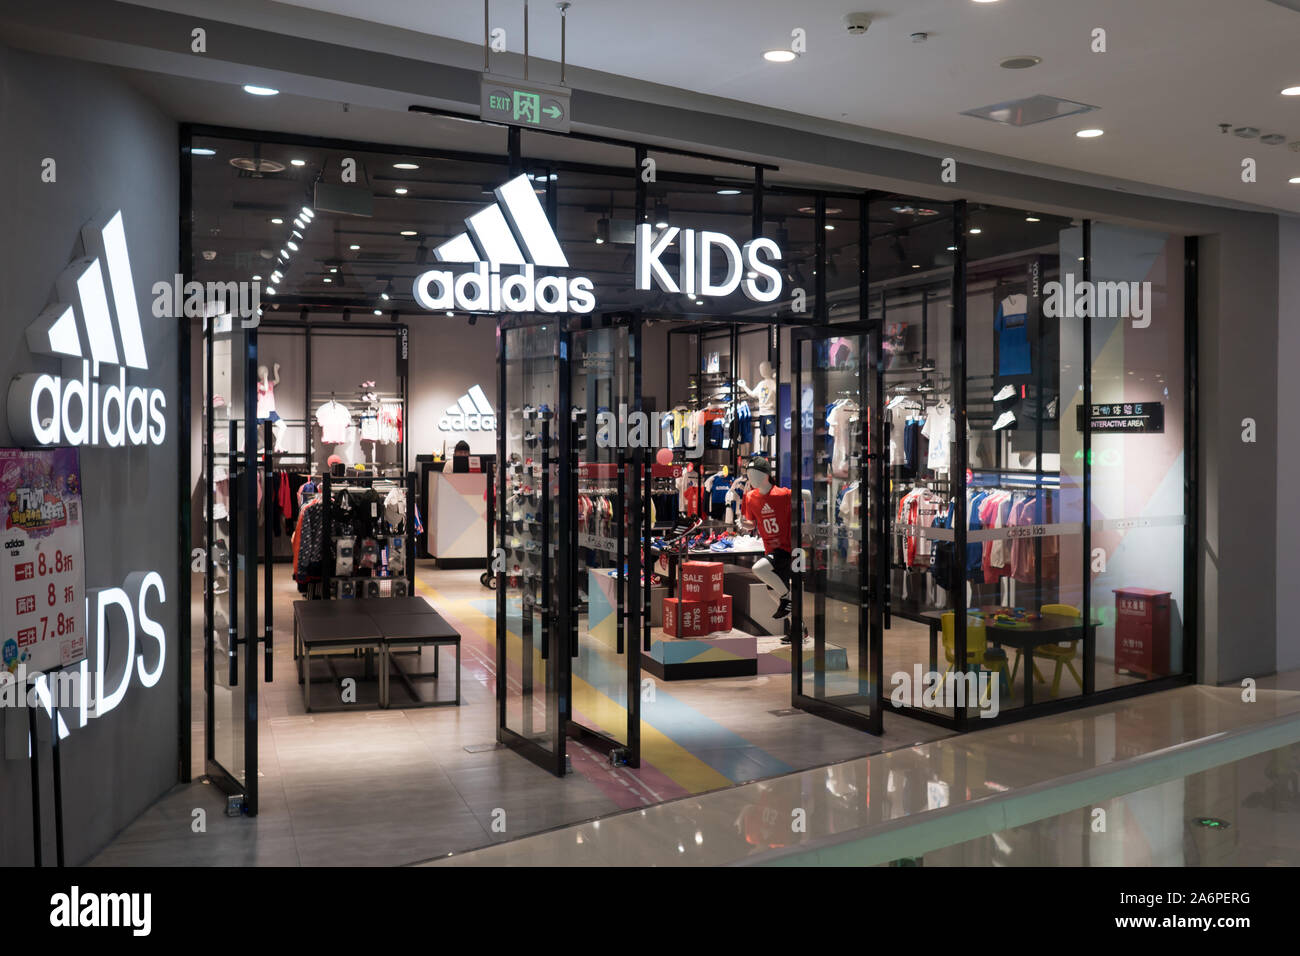 Adidas kids in chinese shopping mall